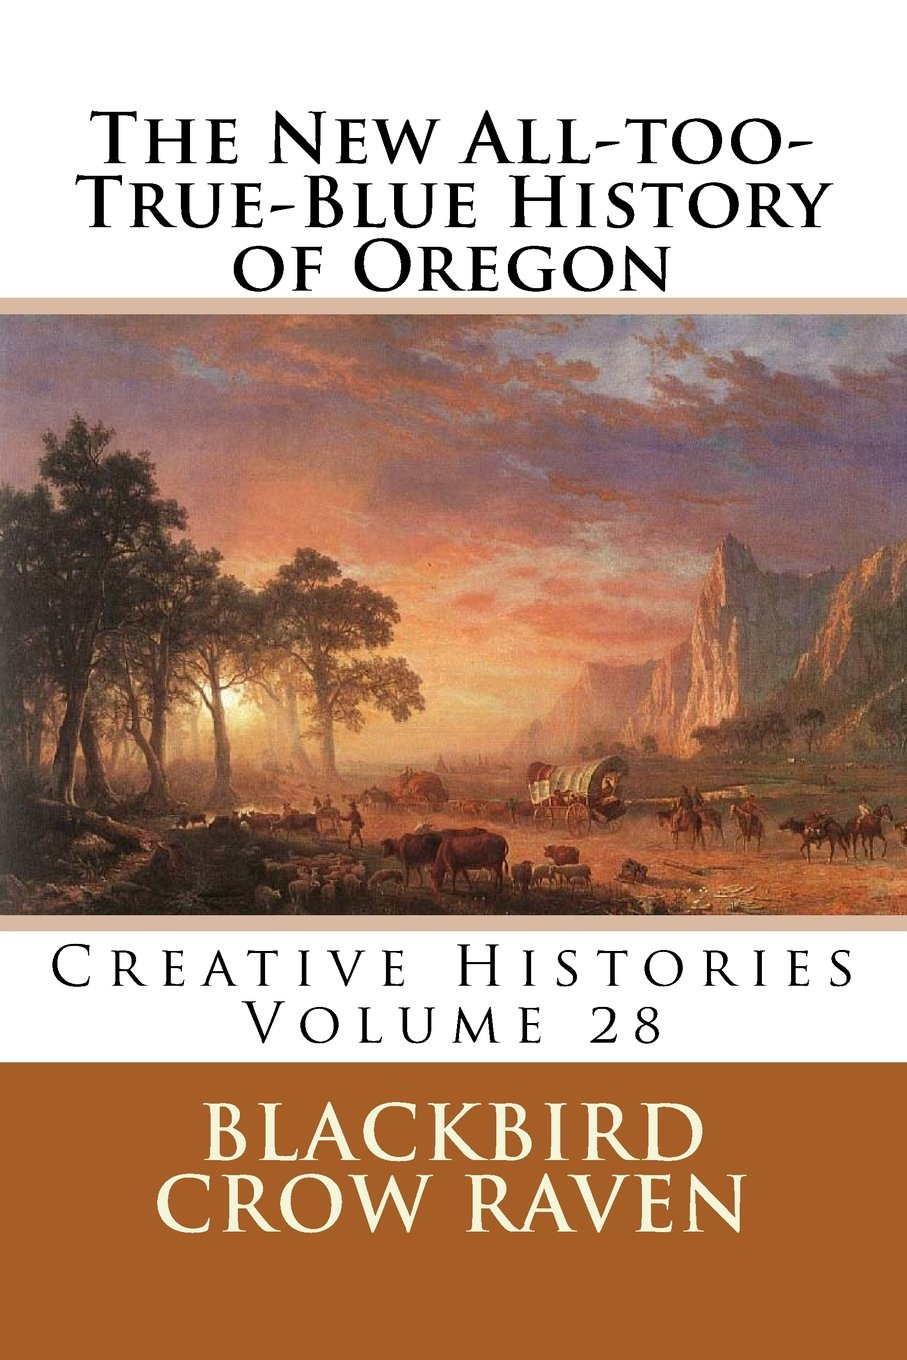 The New All-too-True-Blue History of Oregon (New All-too-True Blue Histories) (Volume 28) pdf epub